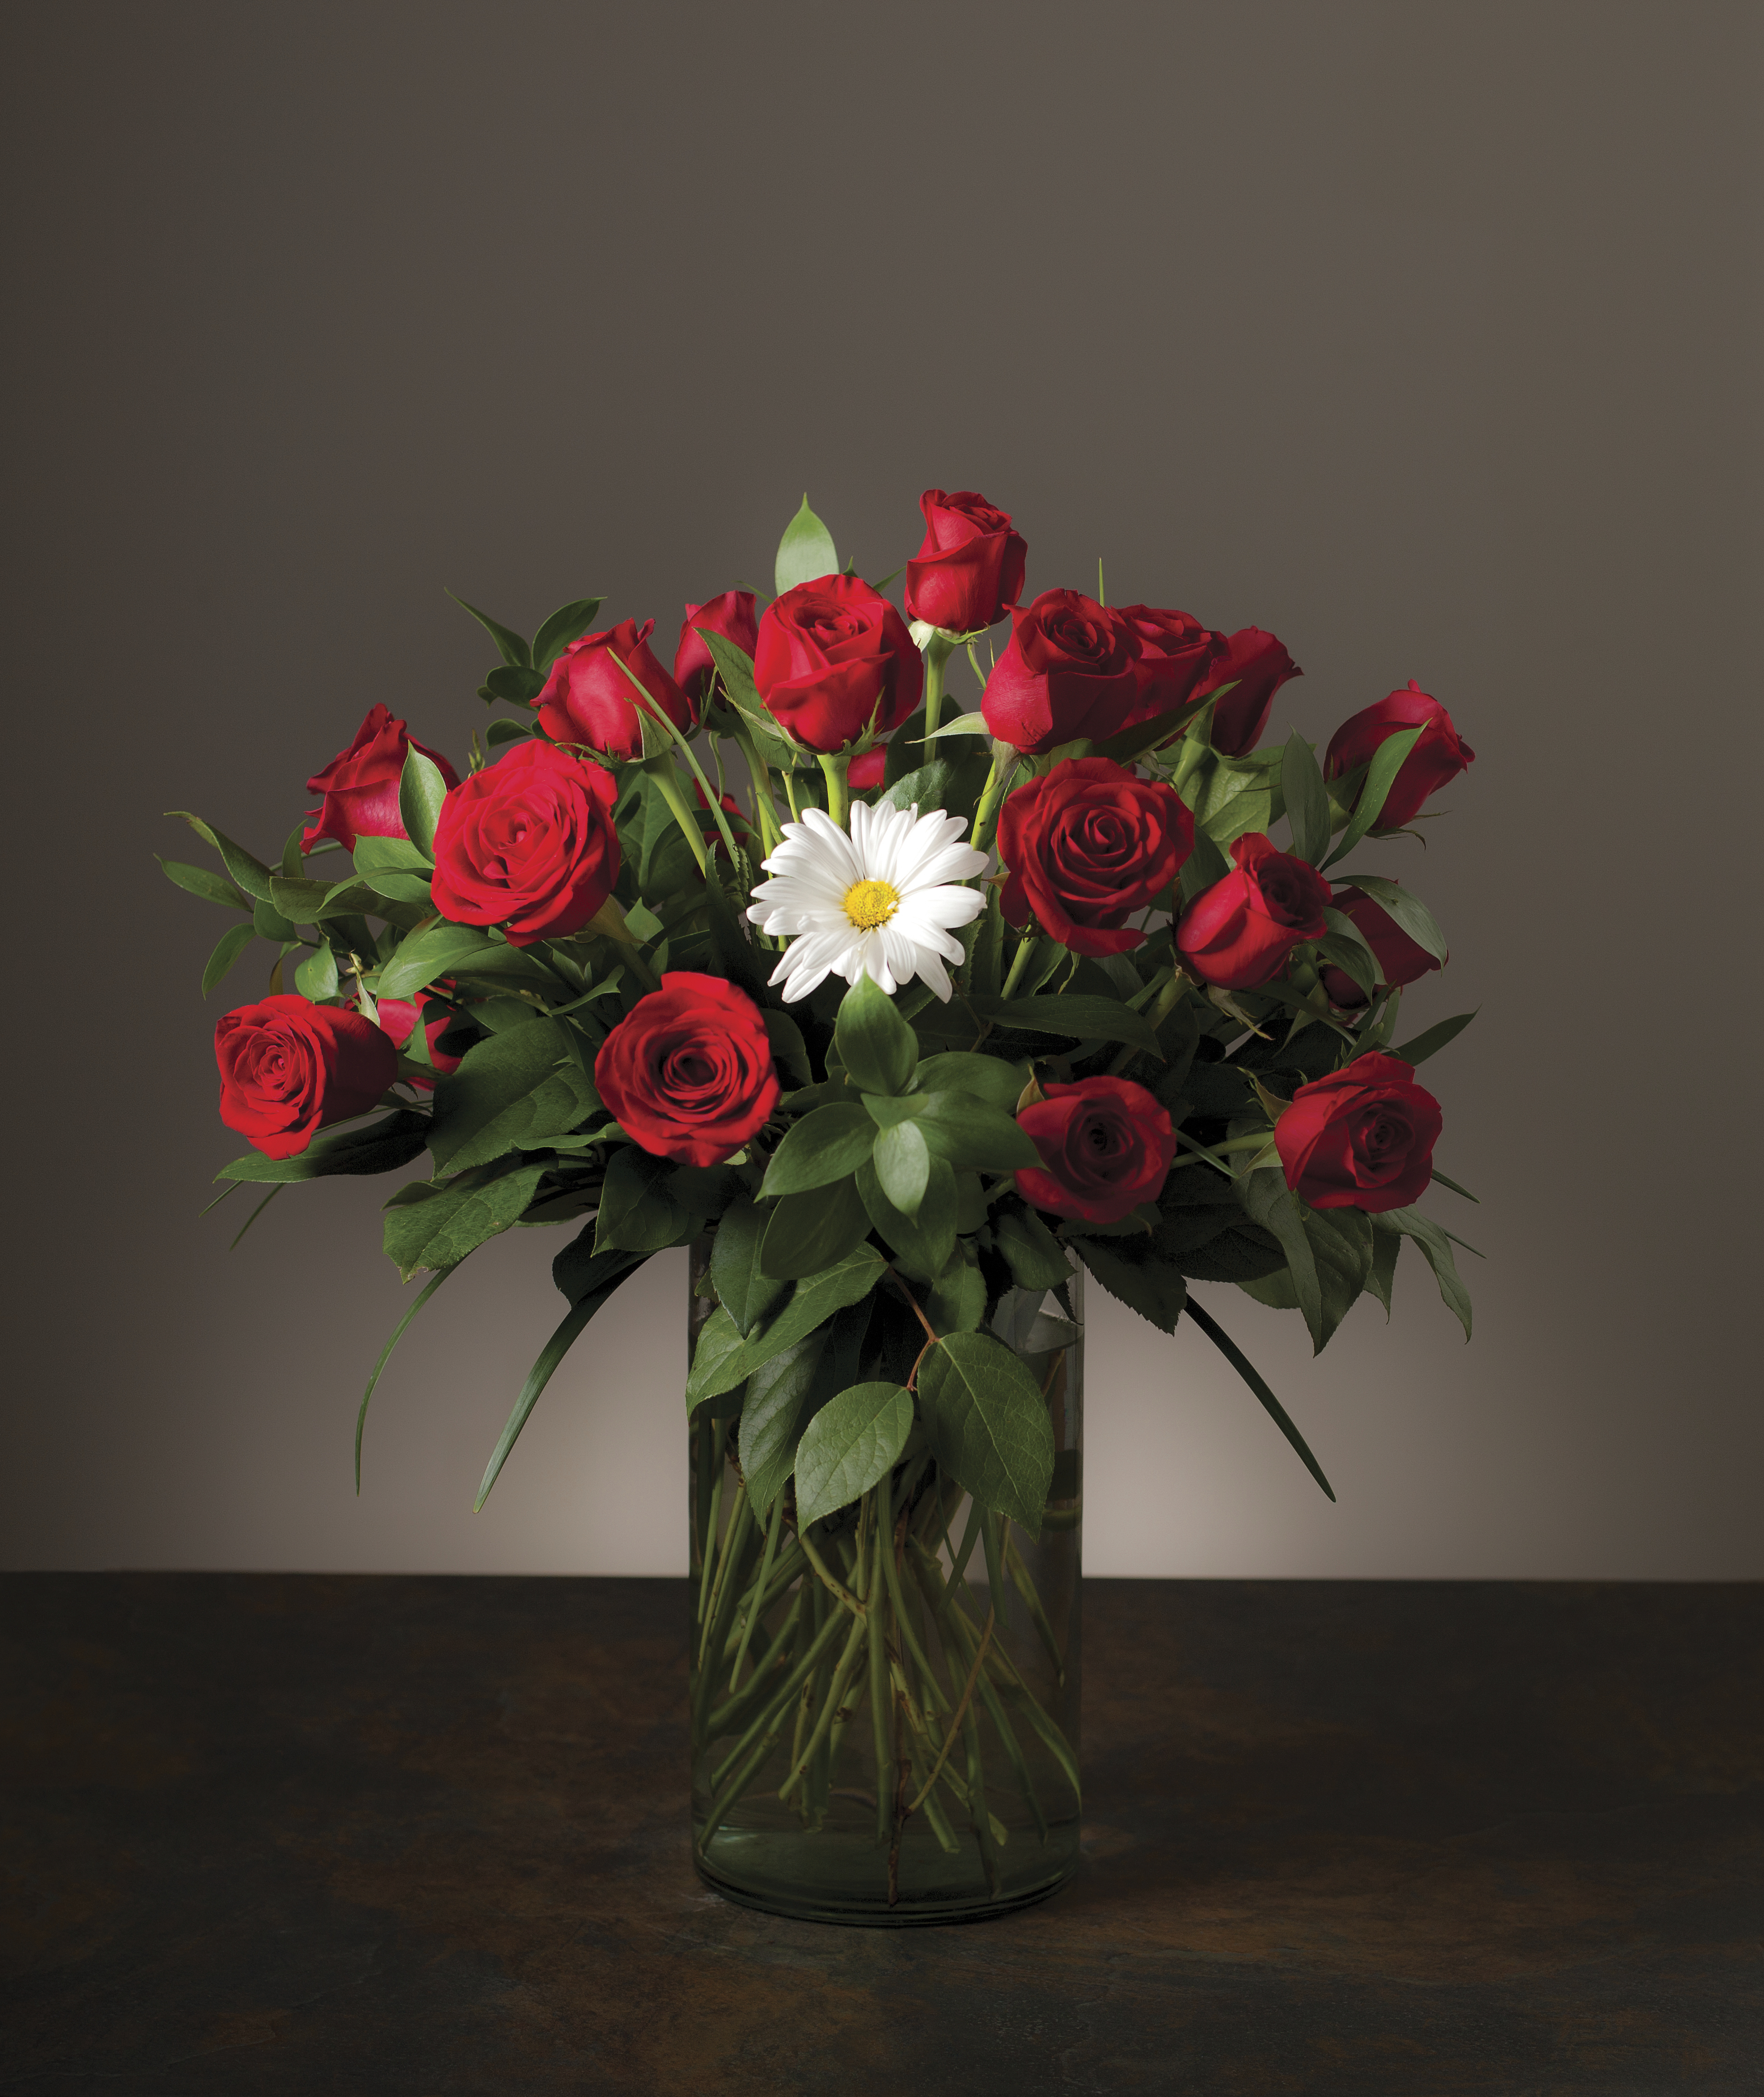 A white daisy in a vase full of red roses.